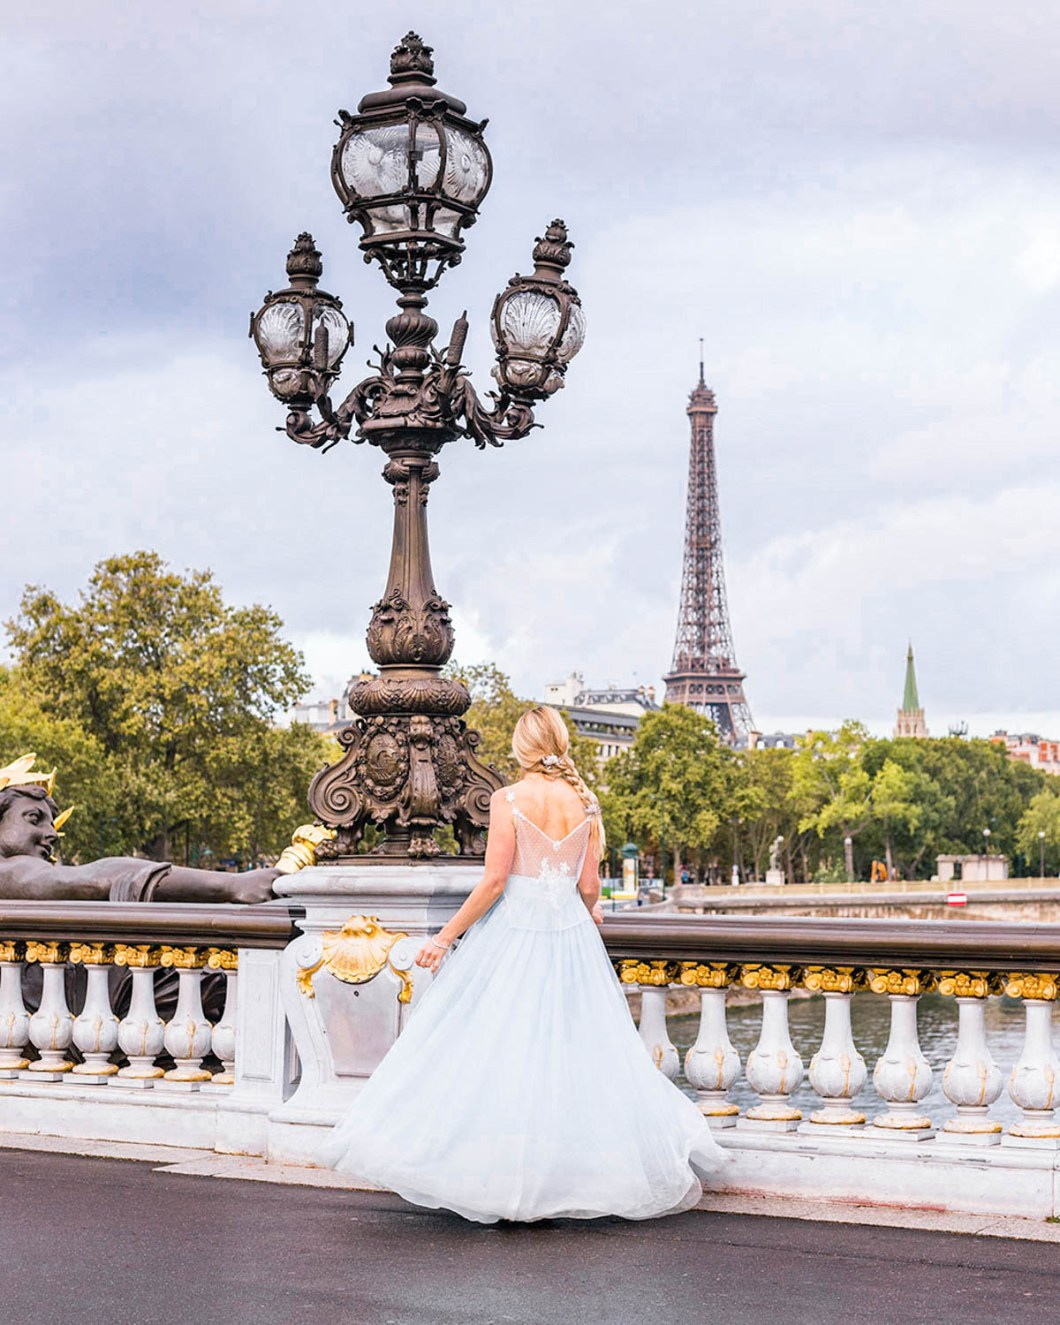 Pont Alexandre III with the Eiffel Tower